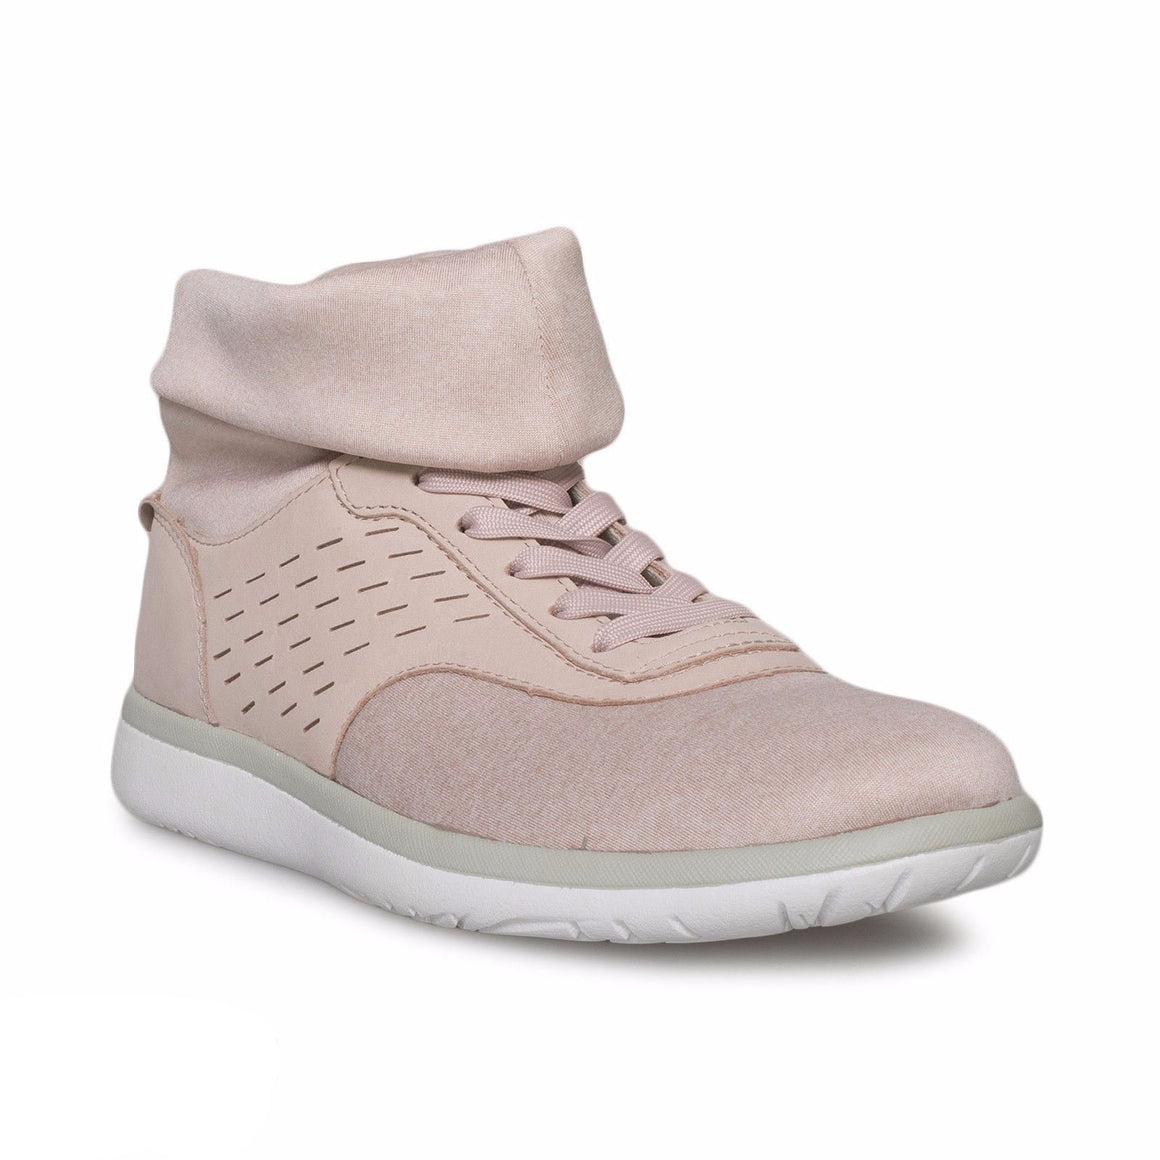 UGG Islay Quartz leather Sneakers